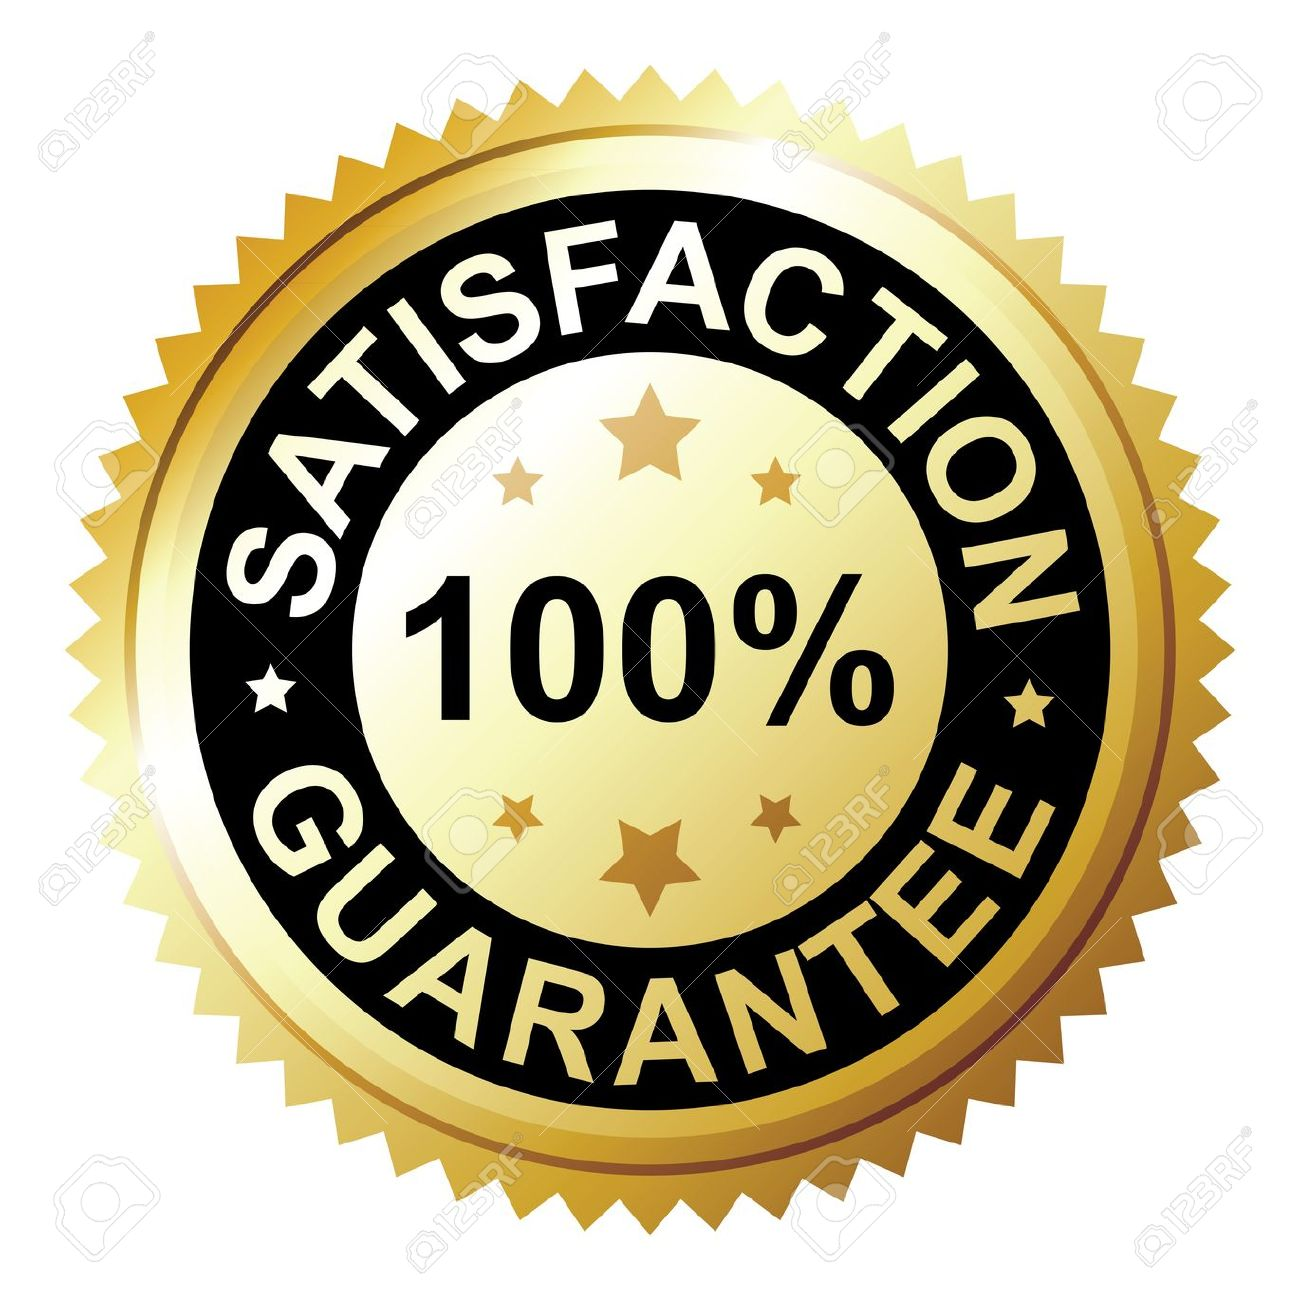 Satisfaction guaranteed clipart jpg freeuse stock guarantee: Satisfaction | Clipart Panda - Free Clipart Images jpg freeuse stock